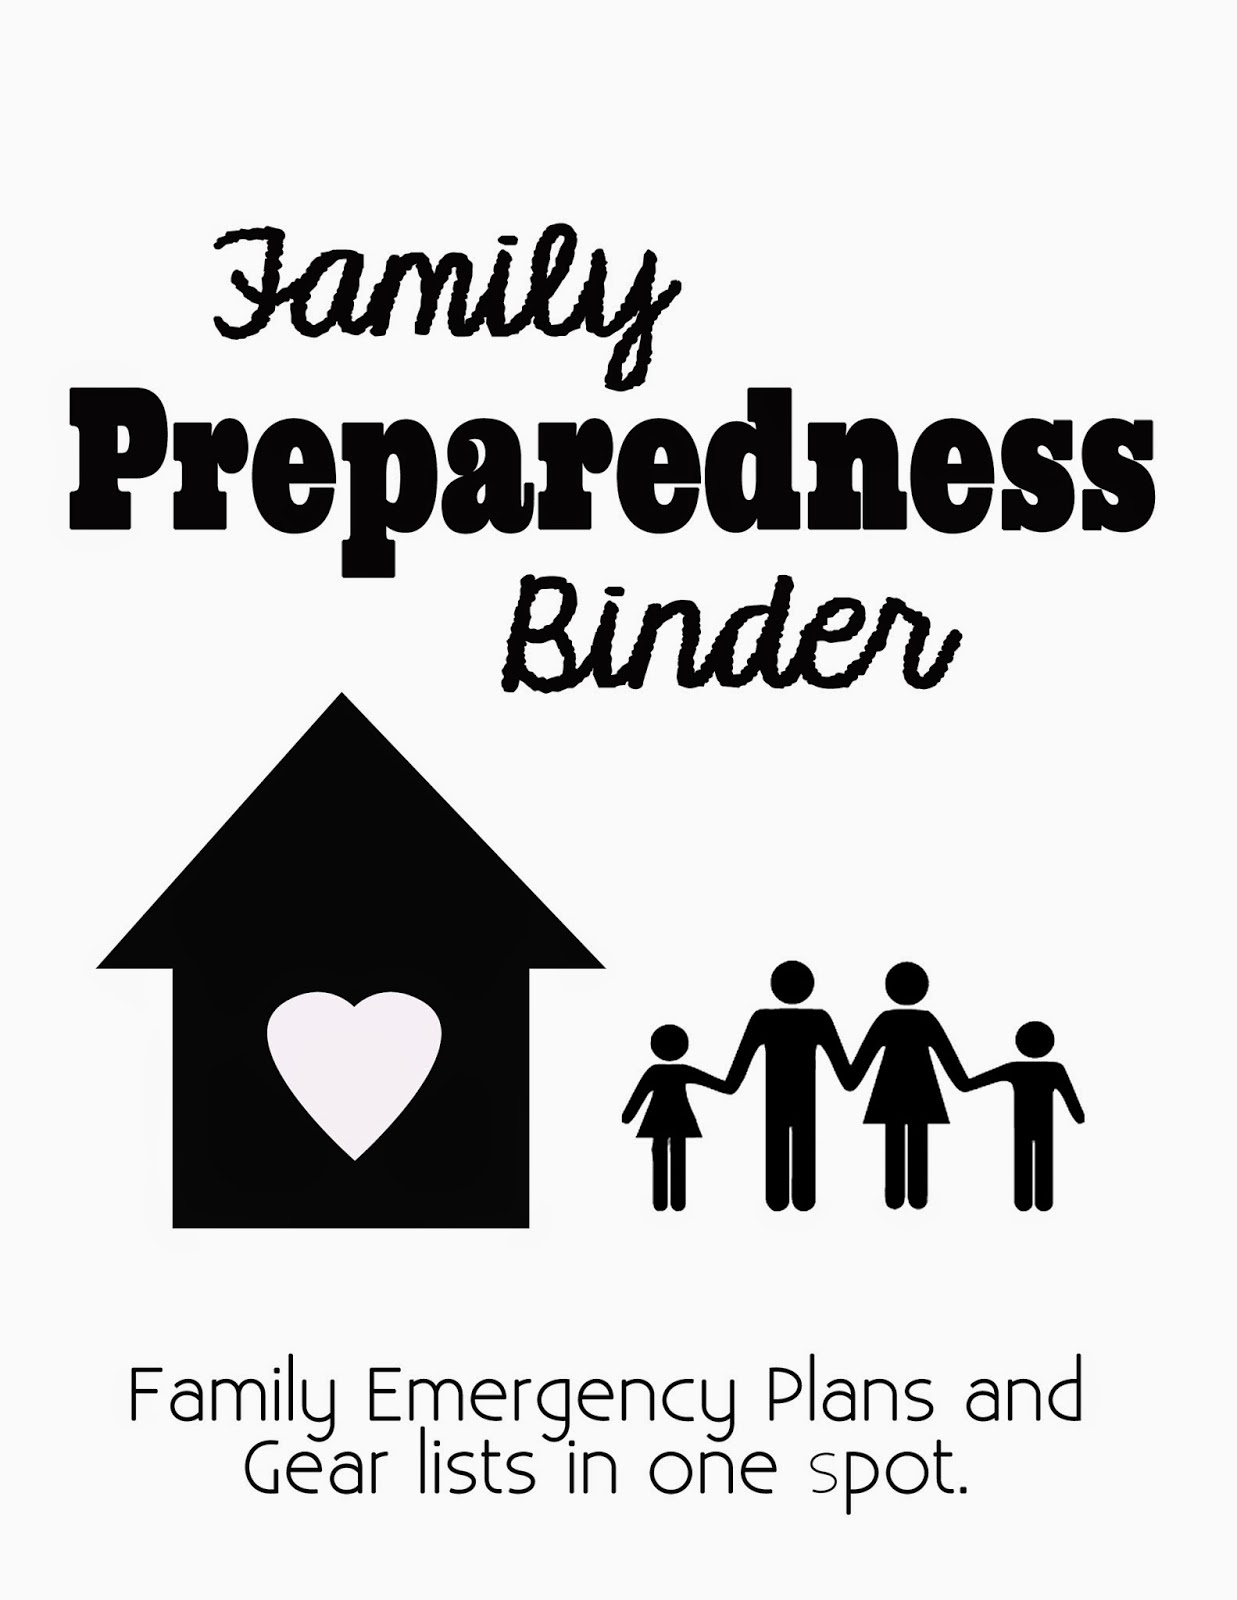 Family Preparedness Binder Information